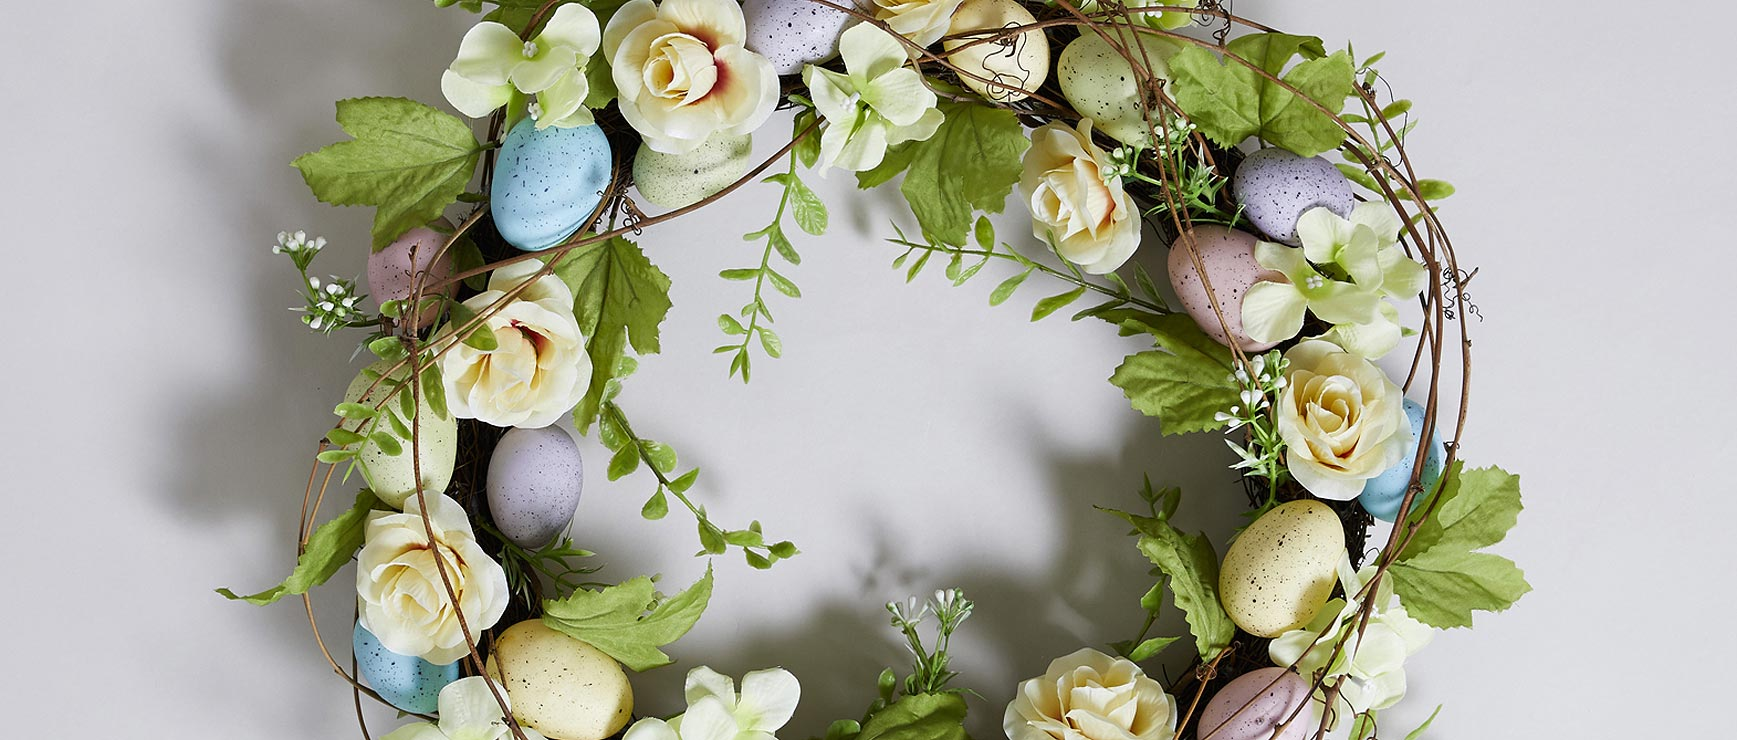 Make Easter home